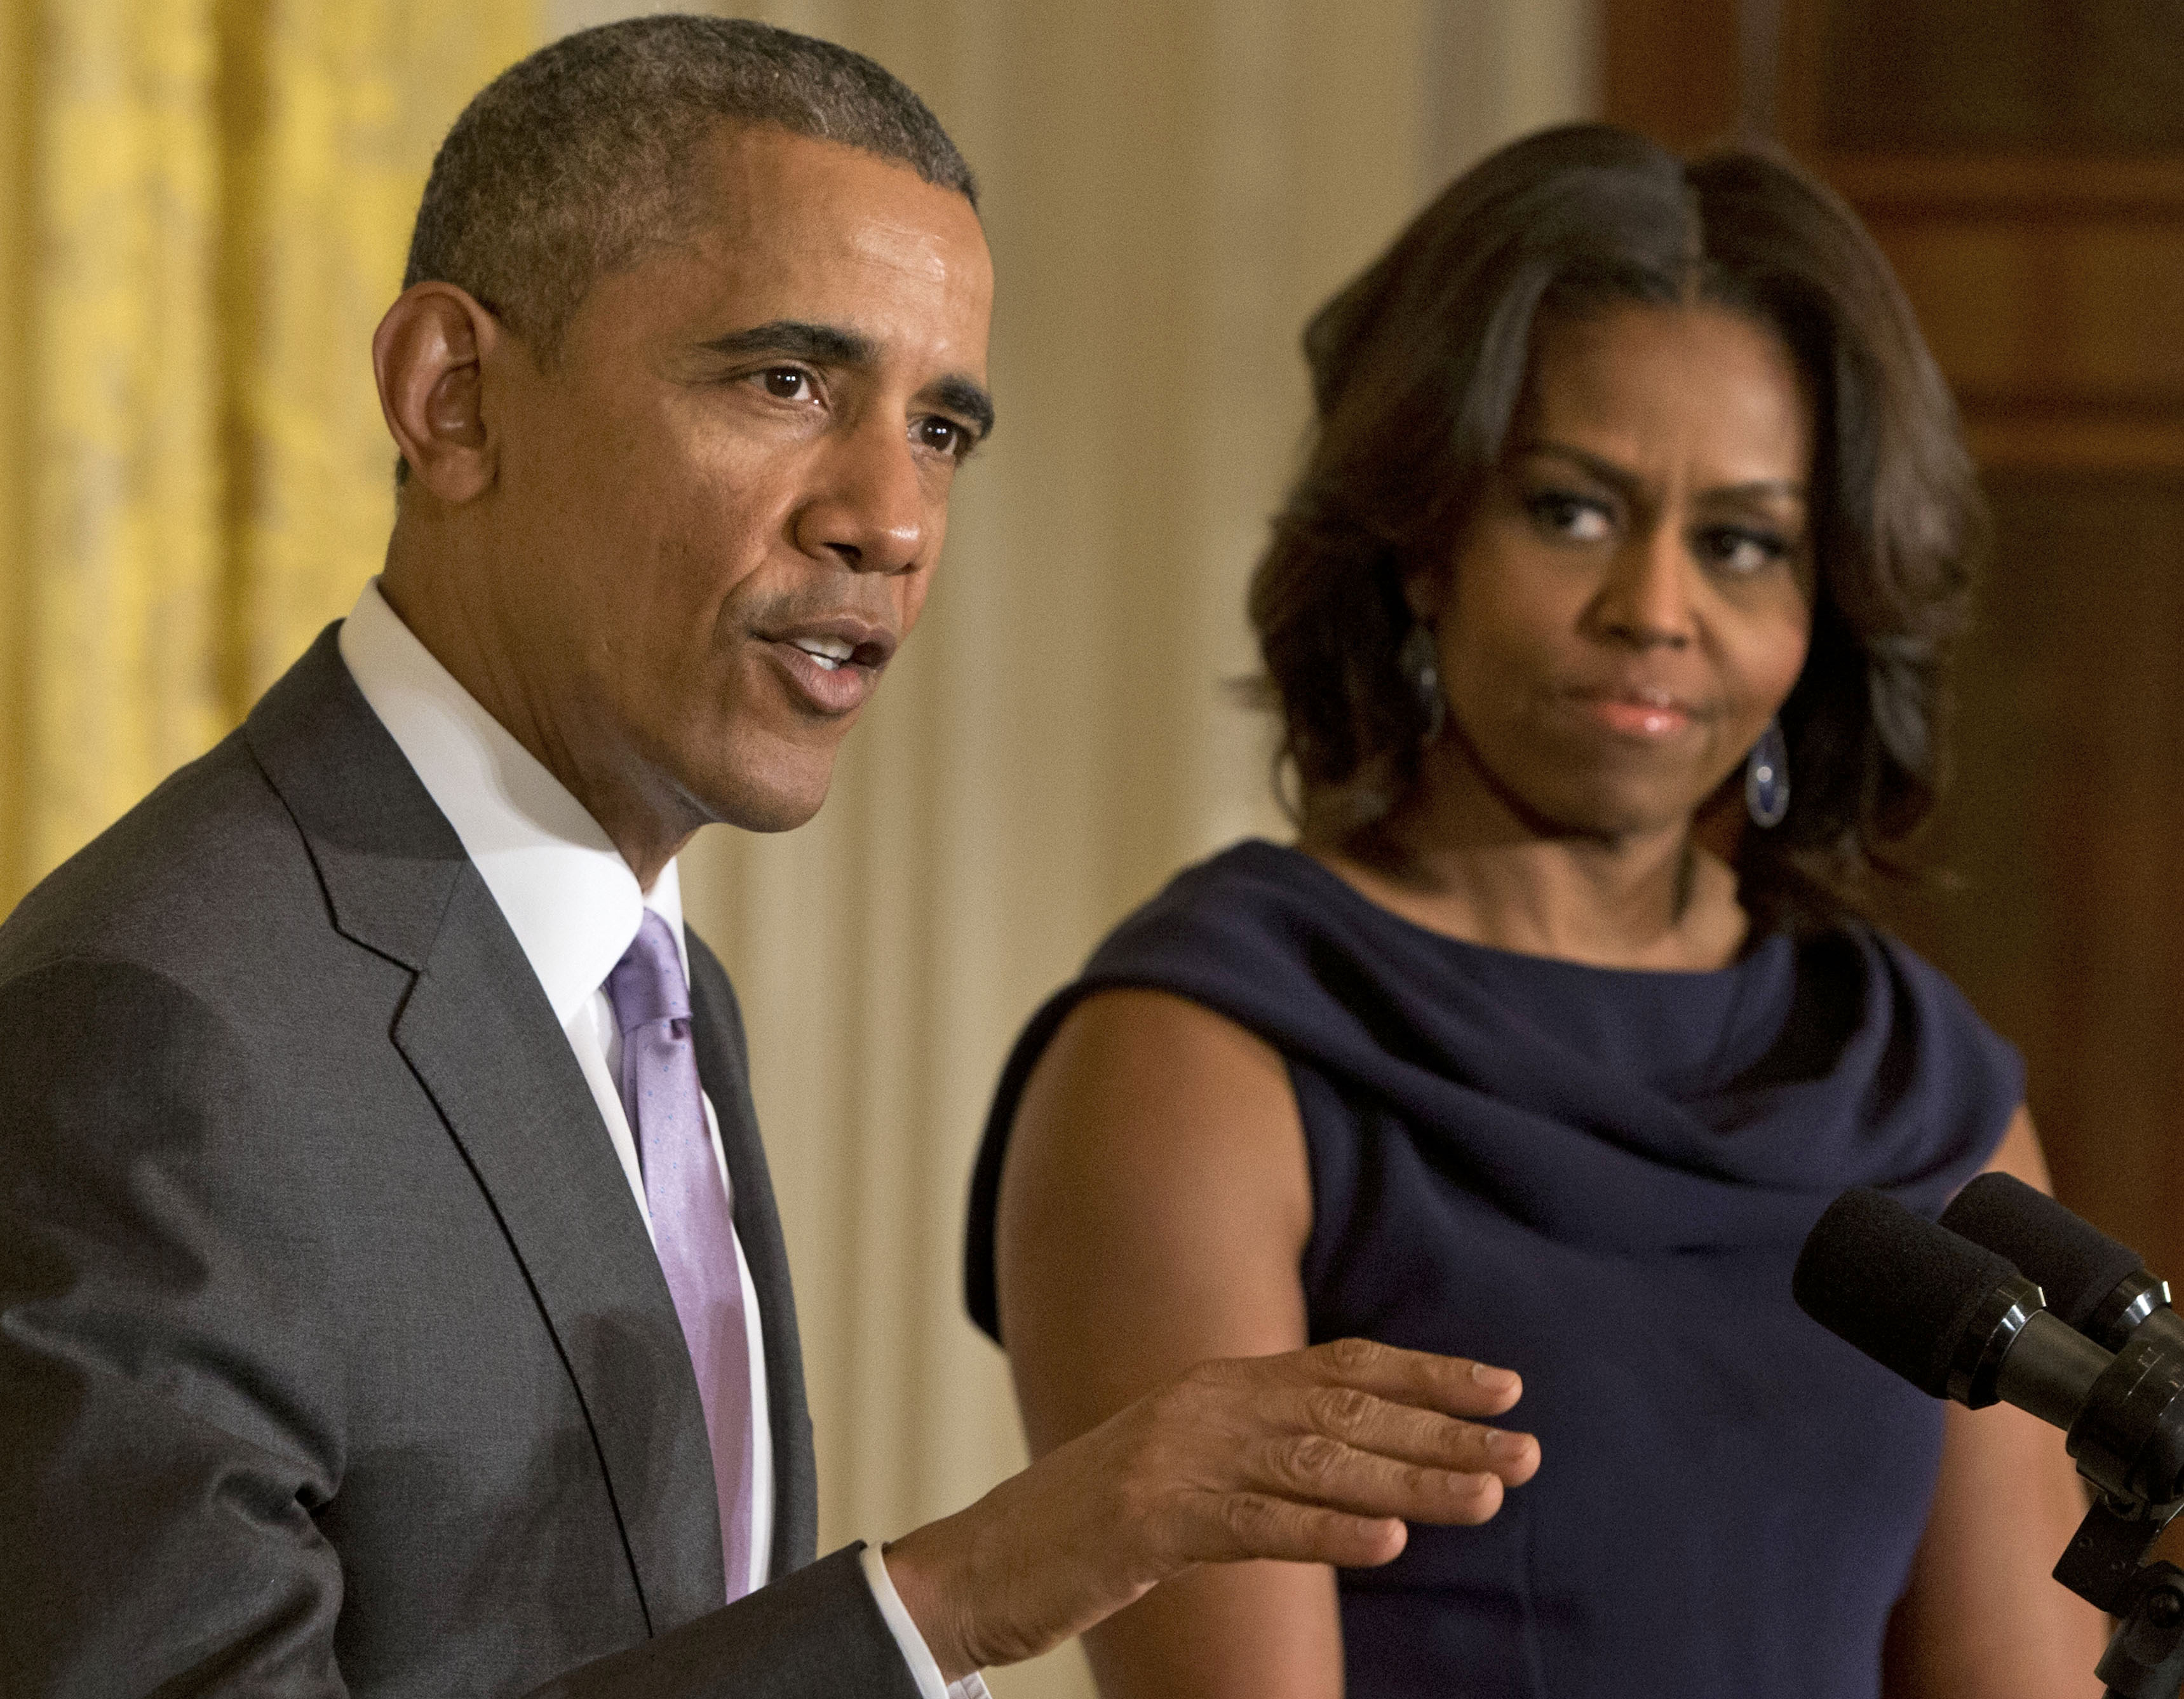 In this March 3, 2015 file photo, President Barack Obama, accompanied by first lady Michelle Obama, speaks in the East Room of the White House in Washington.